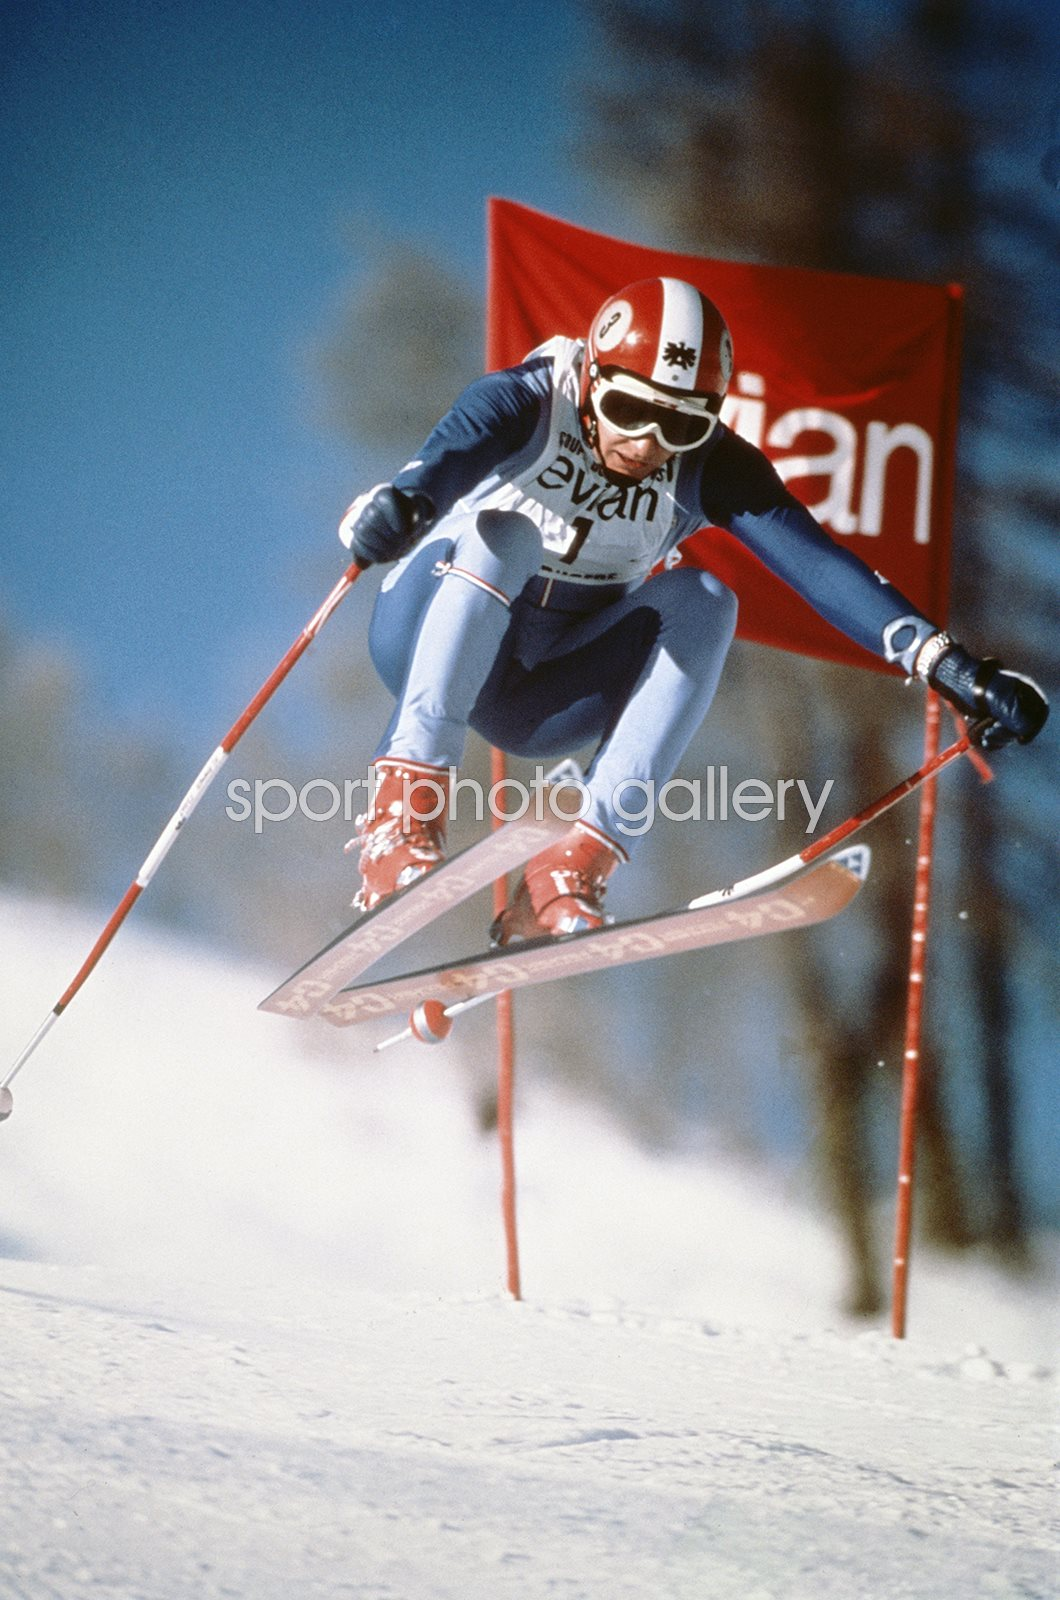 Franz Klammer Austria Alpine Skiing World Cup France 1977